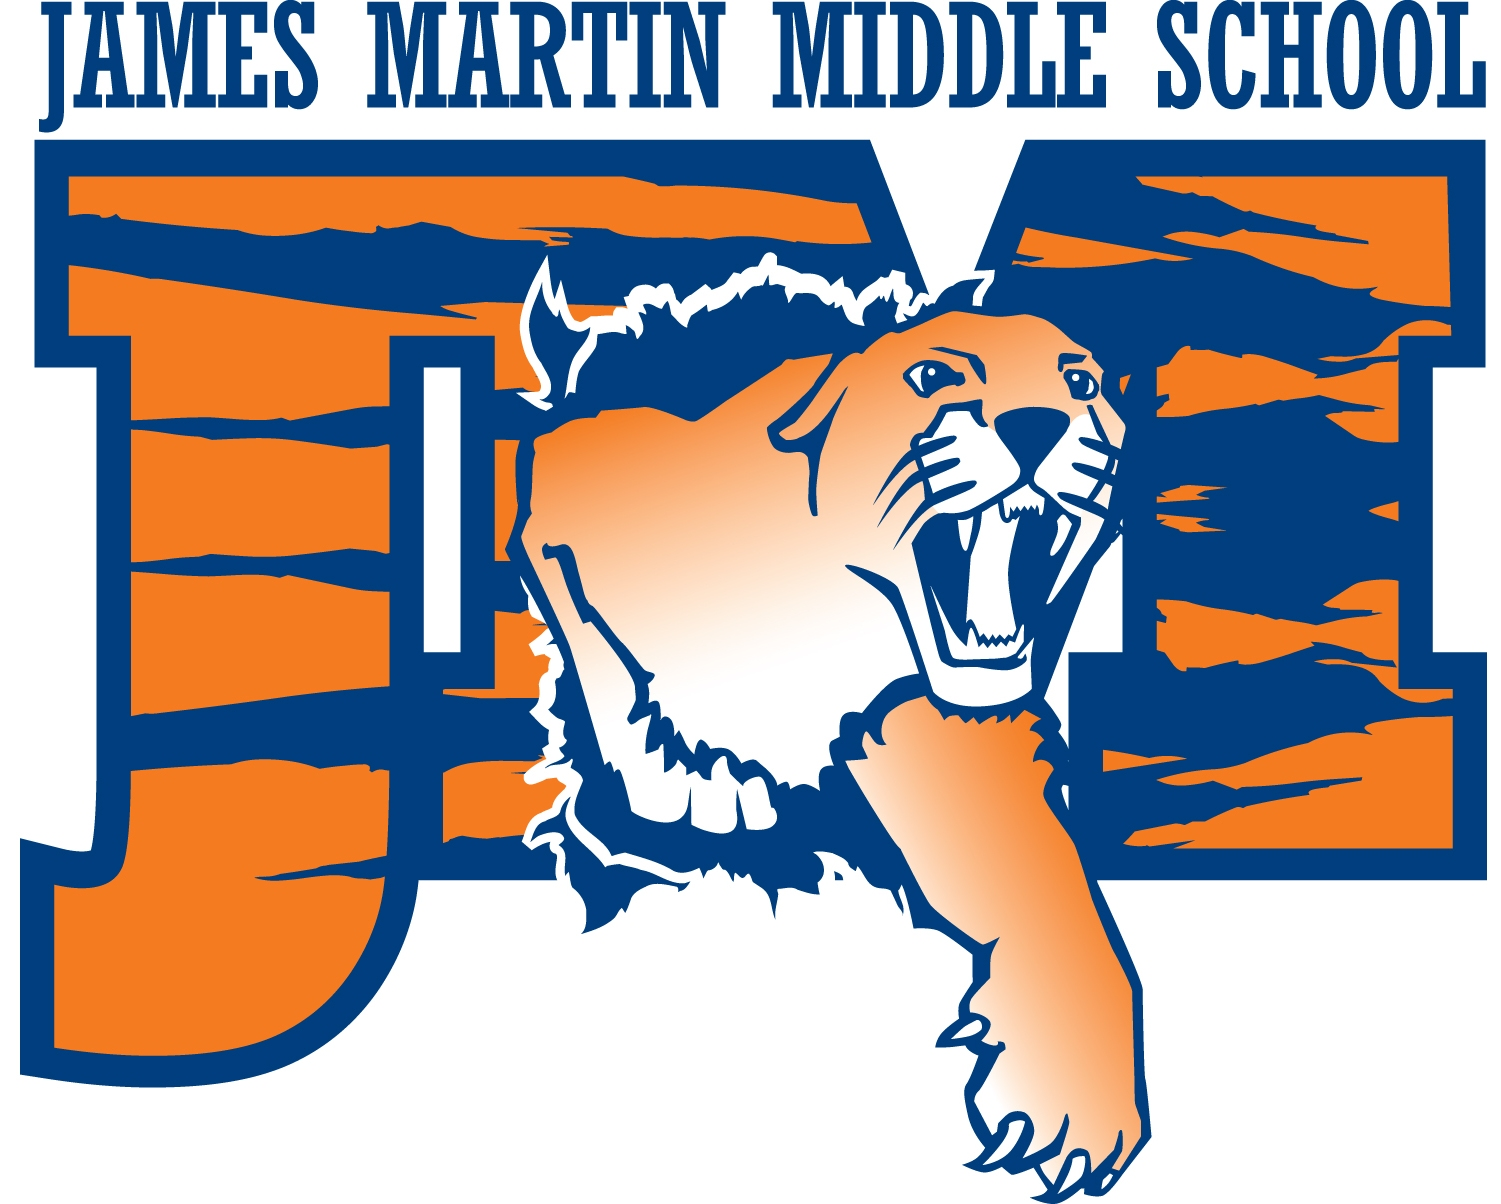 James Martin Middle School